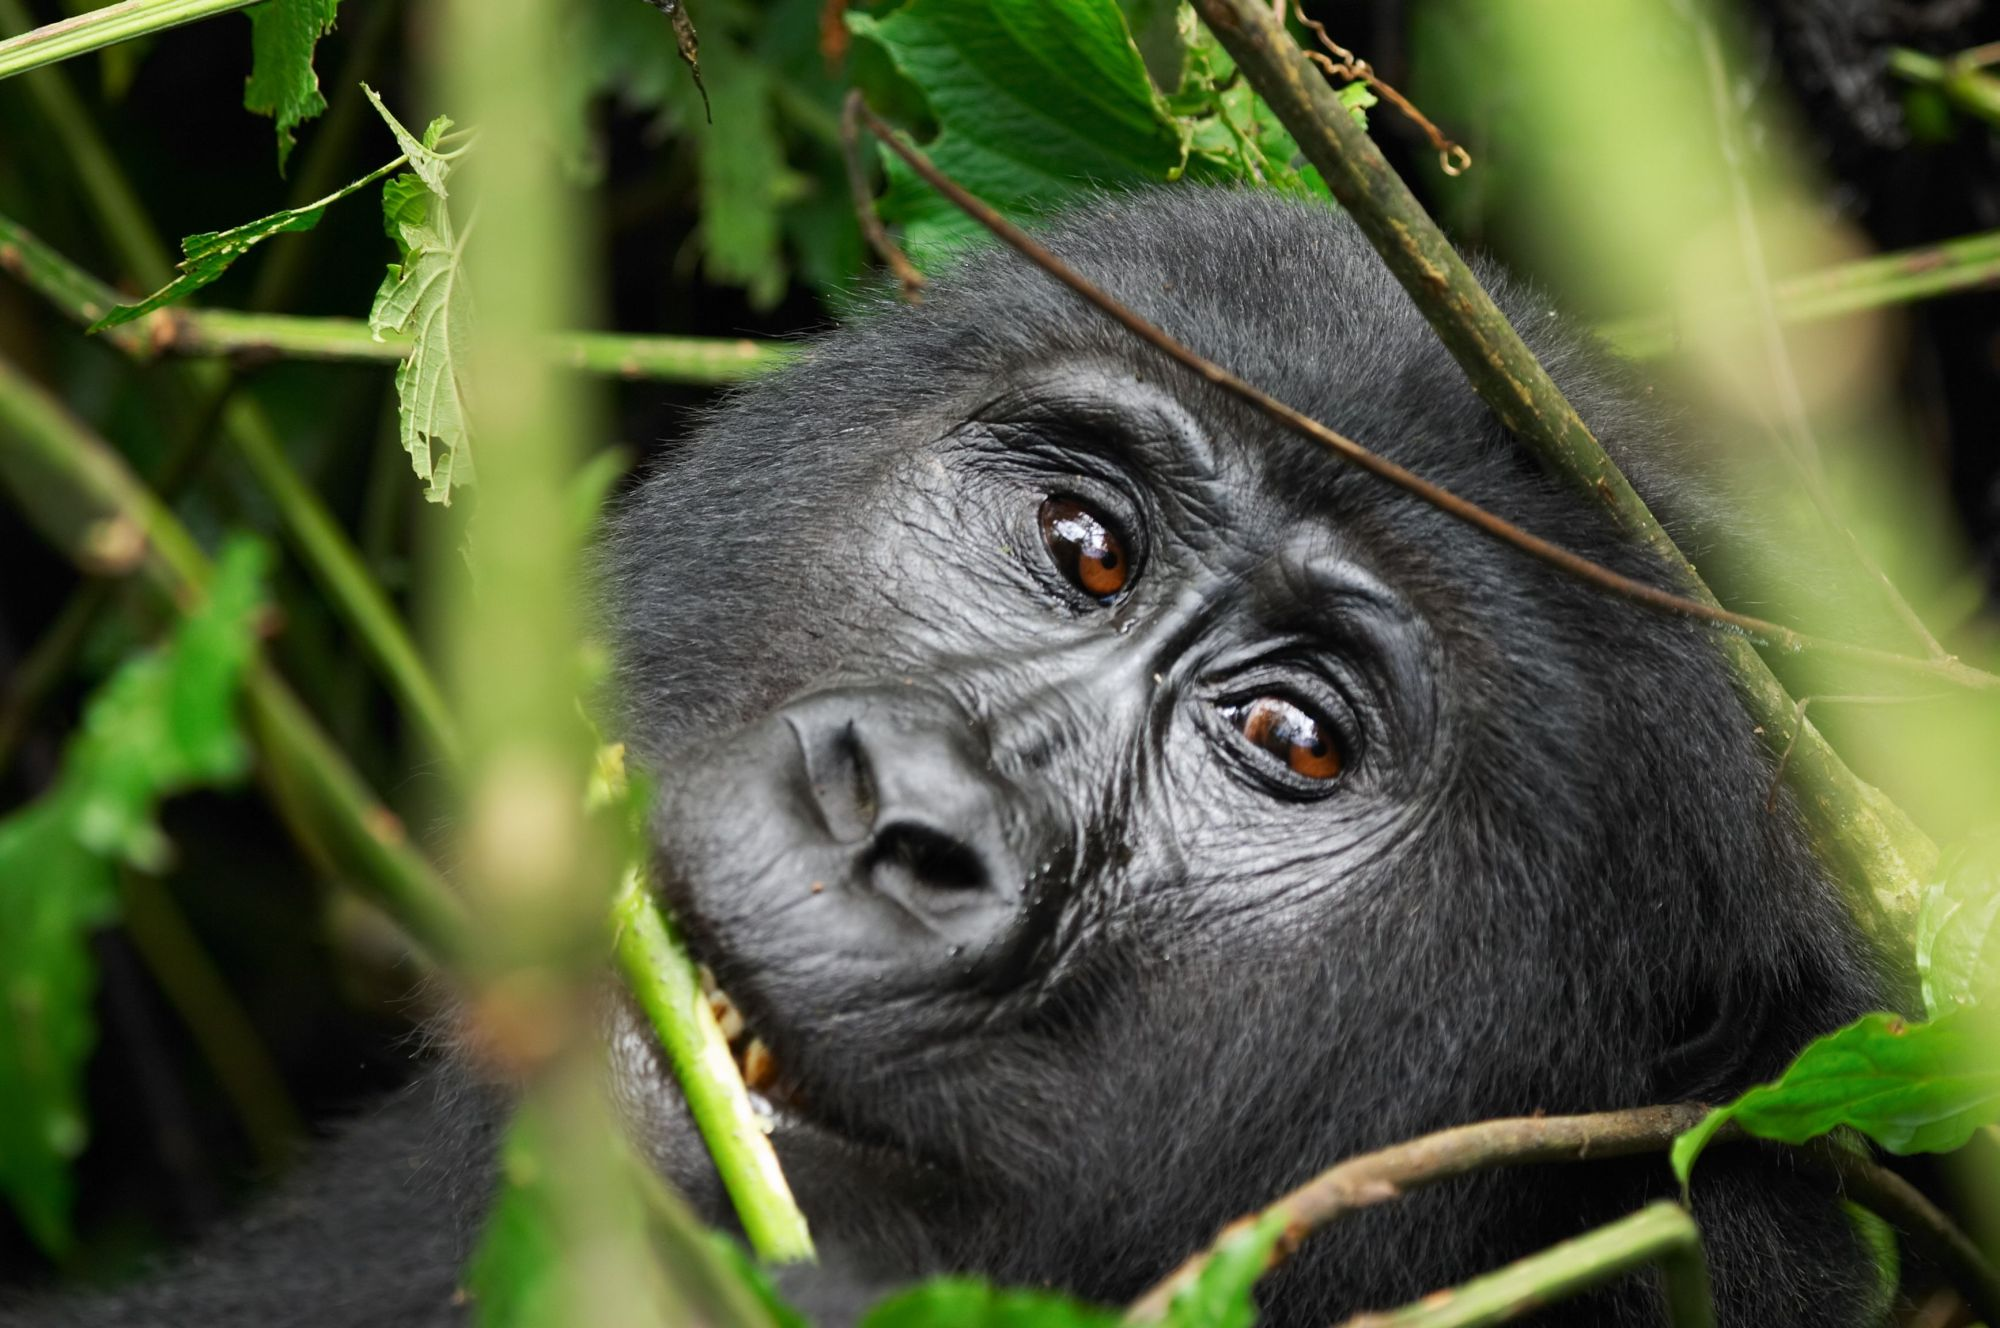 http://www.dreamstime.com/stock-images-wild-gorilla-image2523984